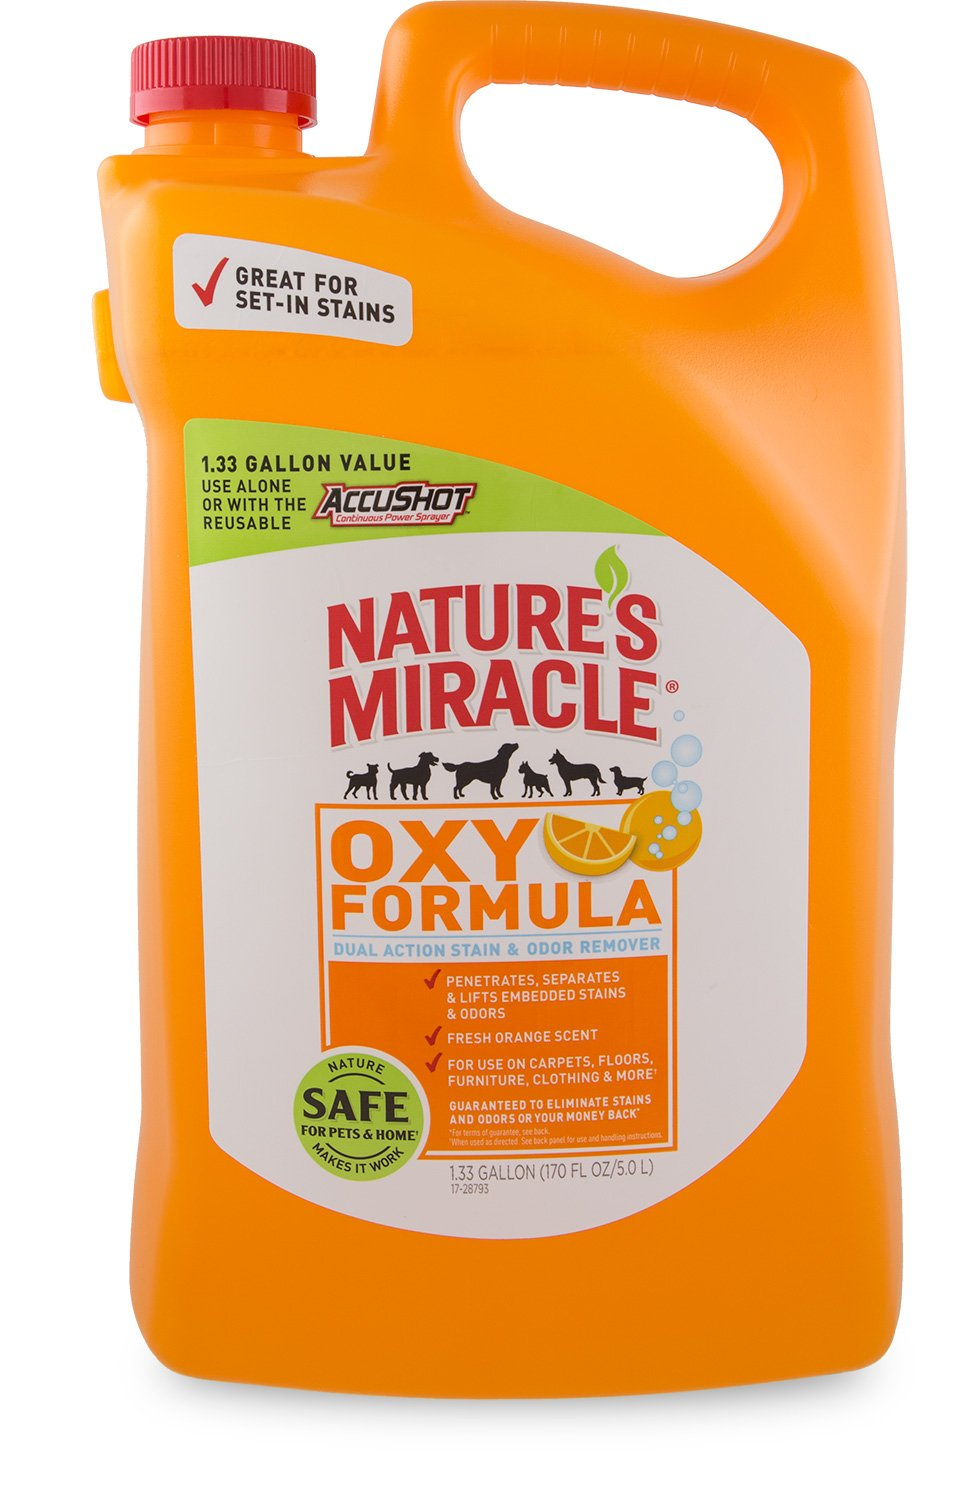 Nature's Miracle Oxy Pet Stain & Odor Remover, 1.33 gallon (P-96931) by Nature's Miracle